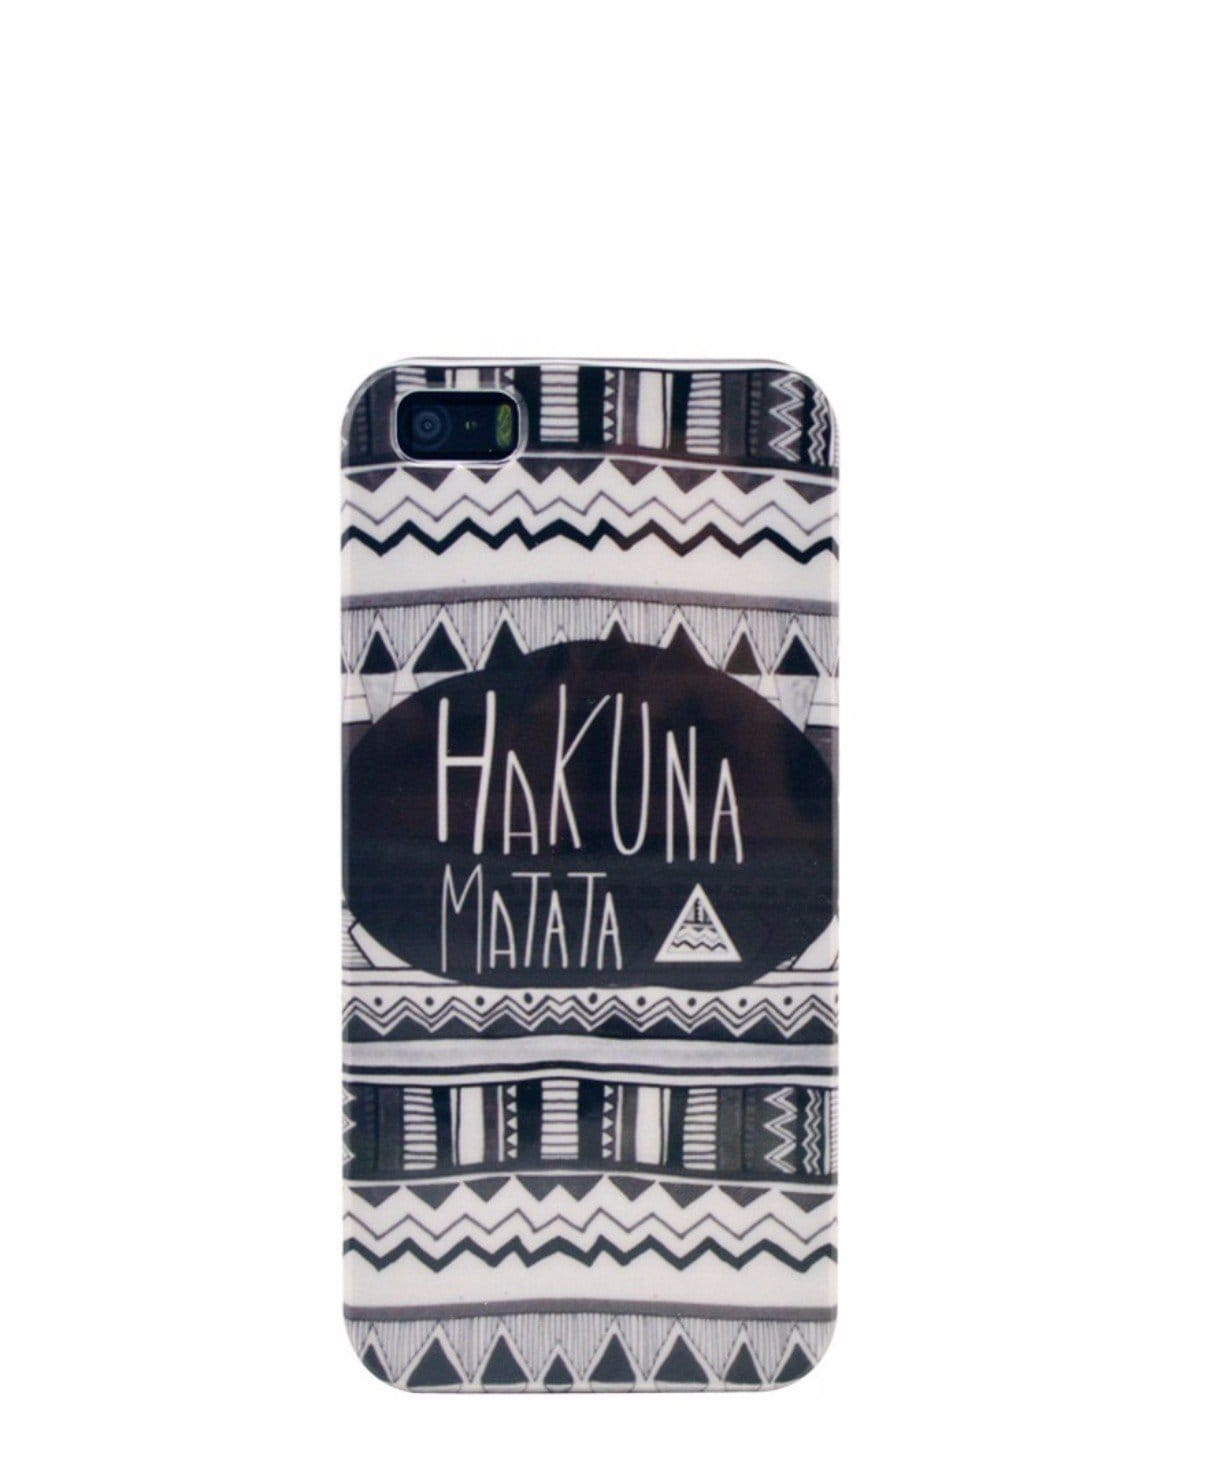 Hakuna Matata IPhone Cover - Uptownie